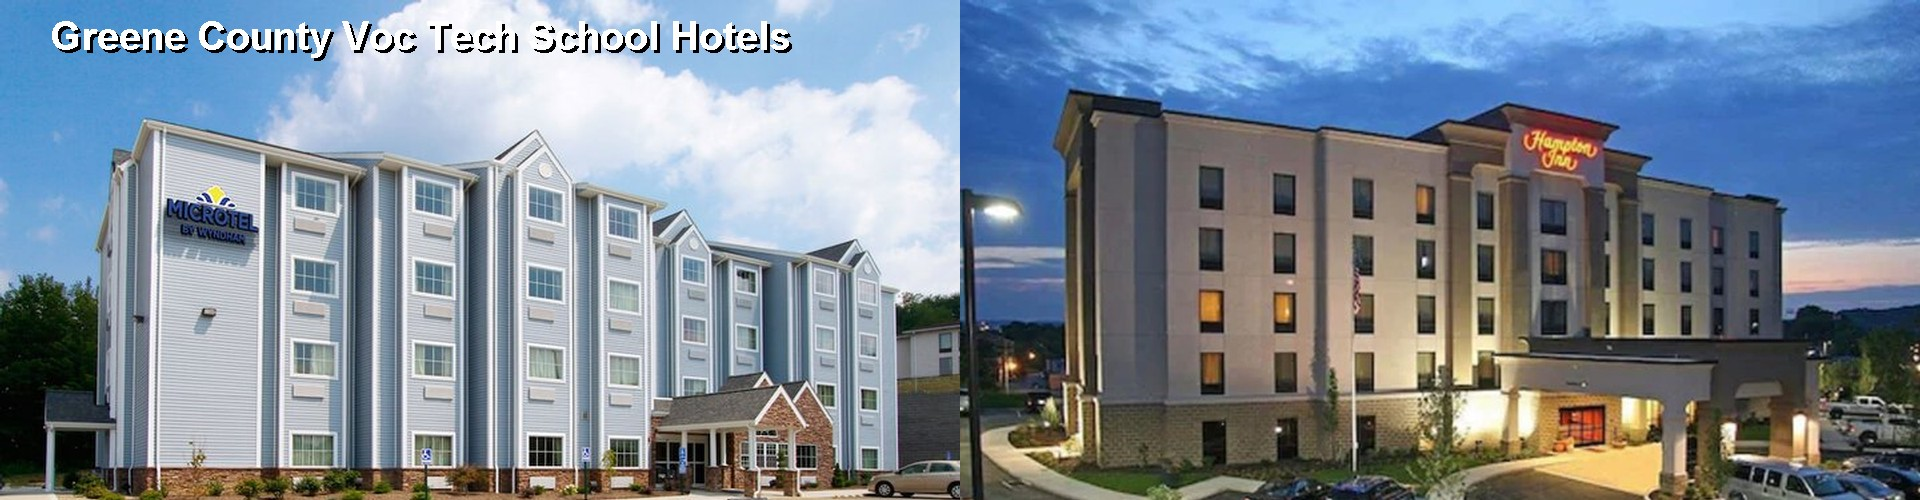 5 Best Hotels near Greene County Voc Tech School